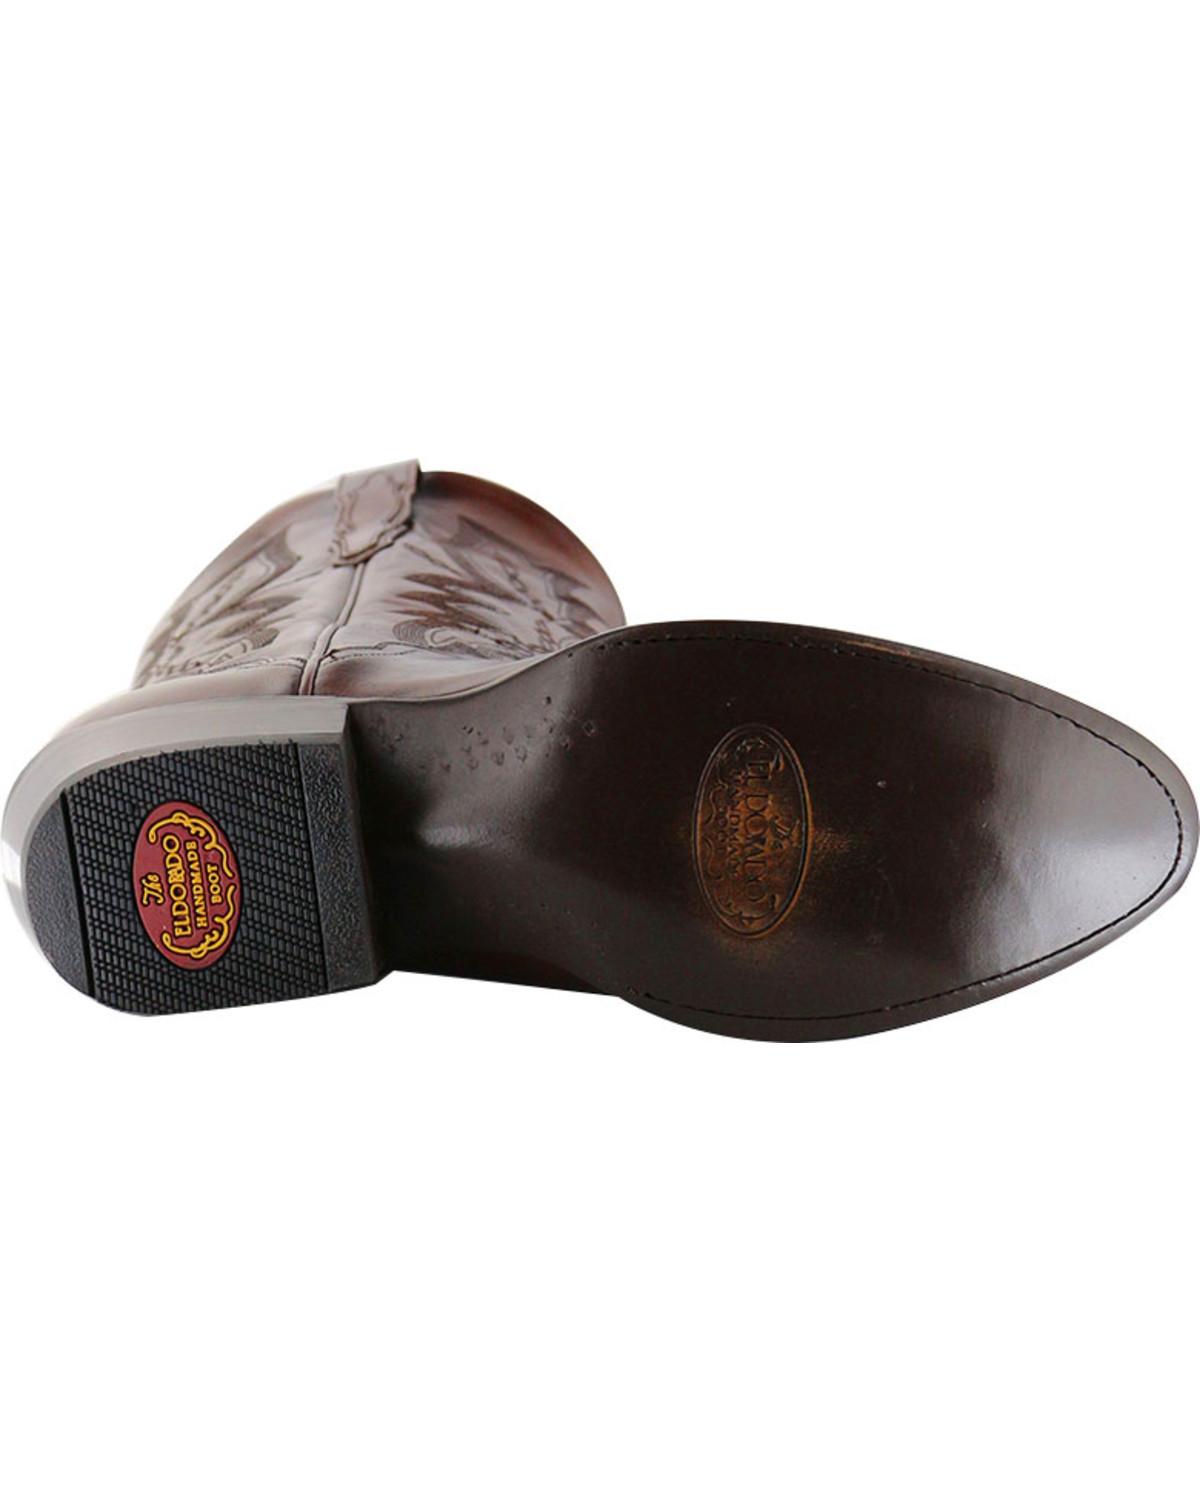 el dorado men Country outfitter has the latest styles of men's boots from el dorado we cover the shipping on orders over $99.